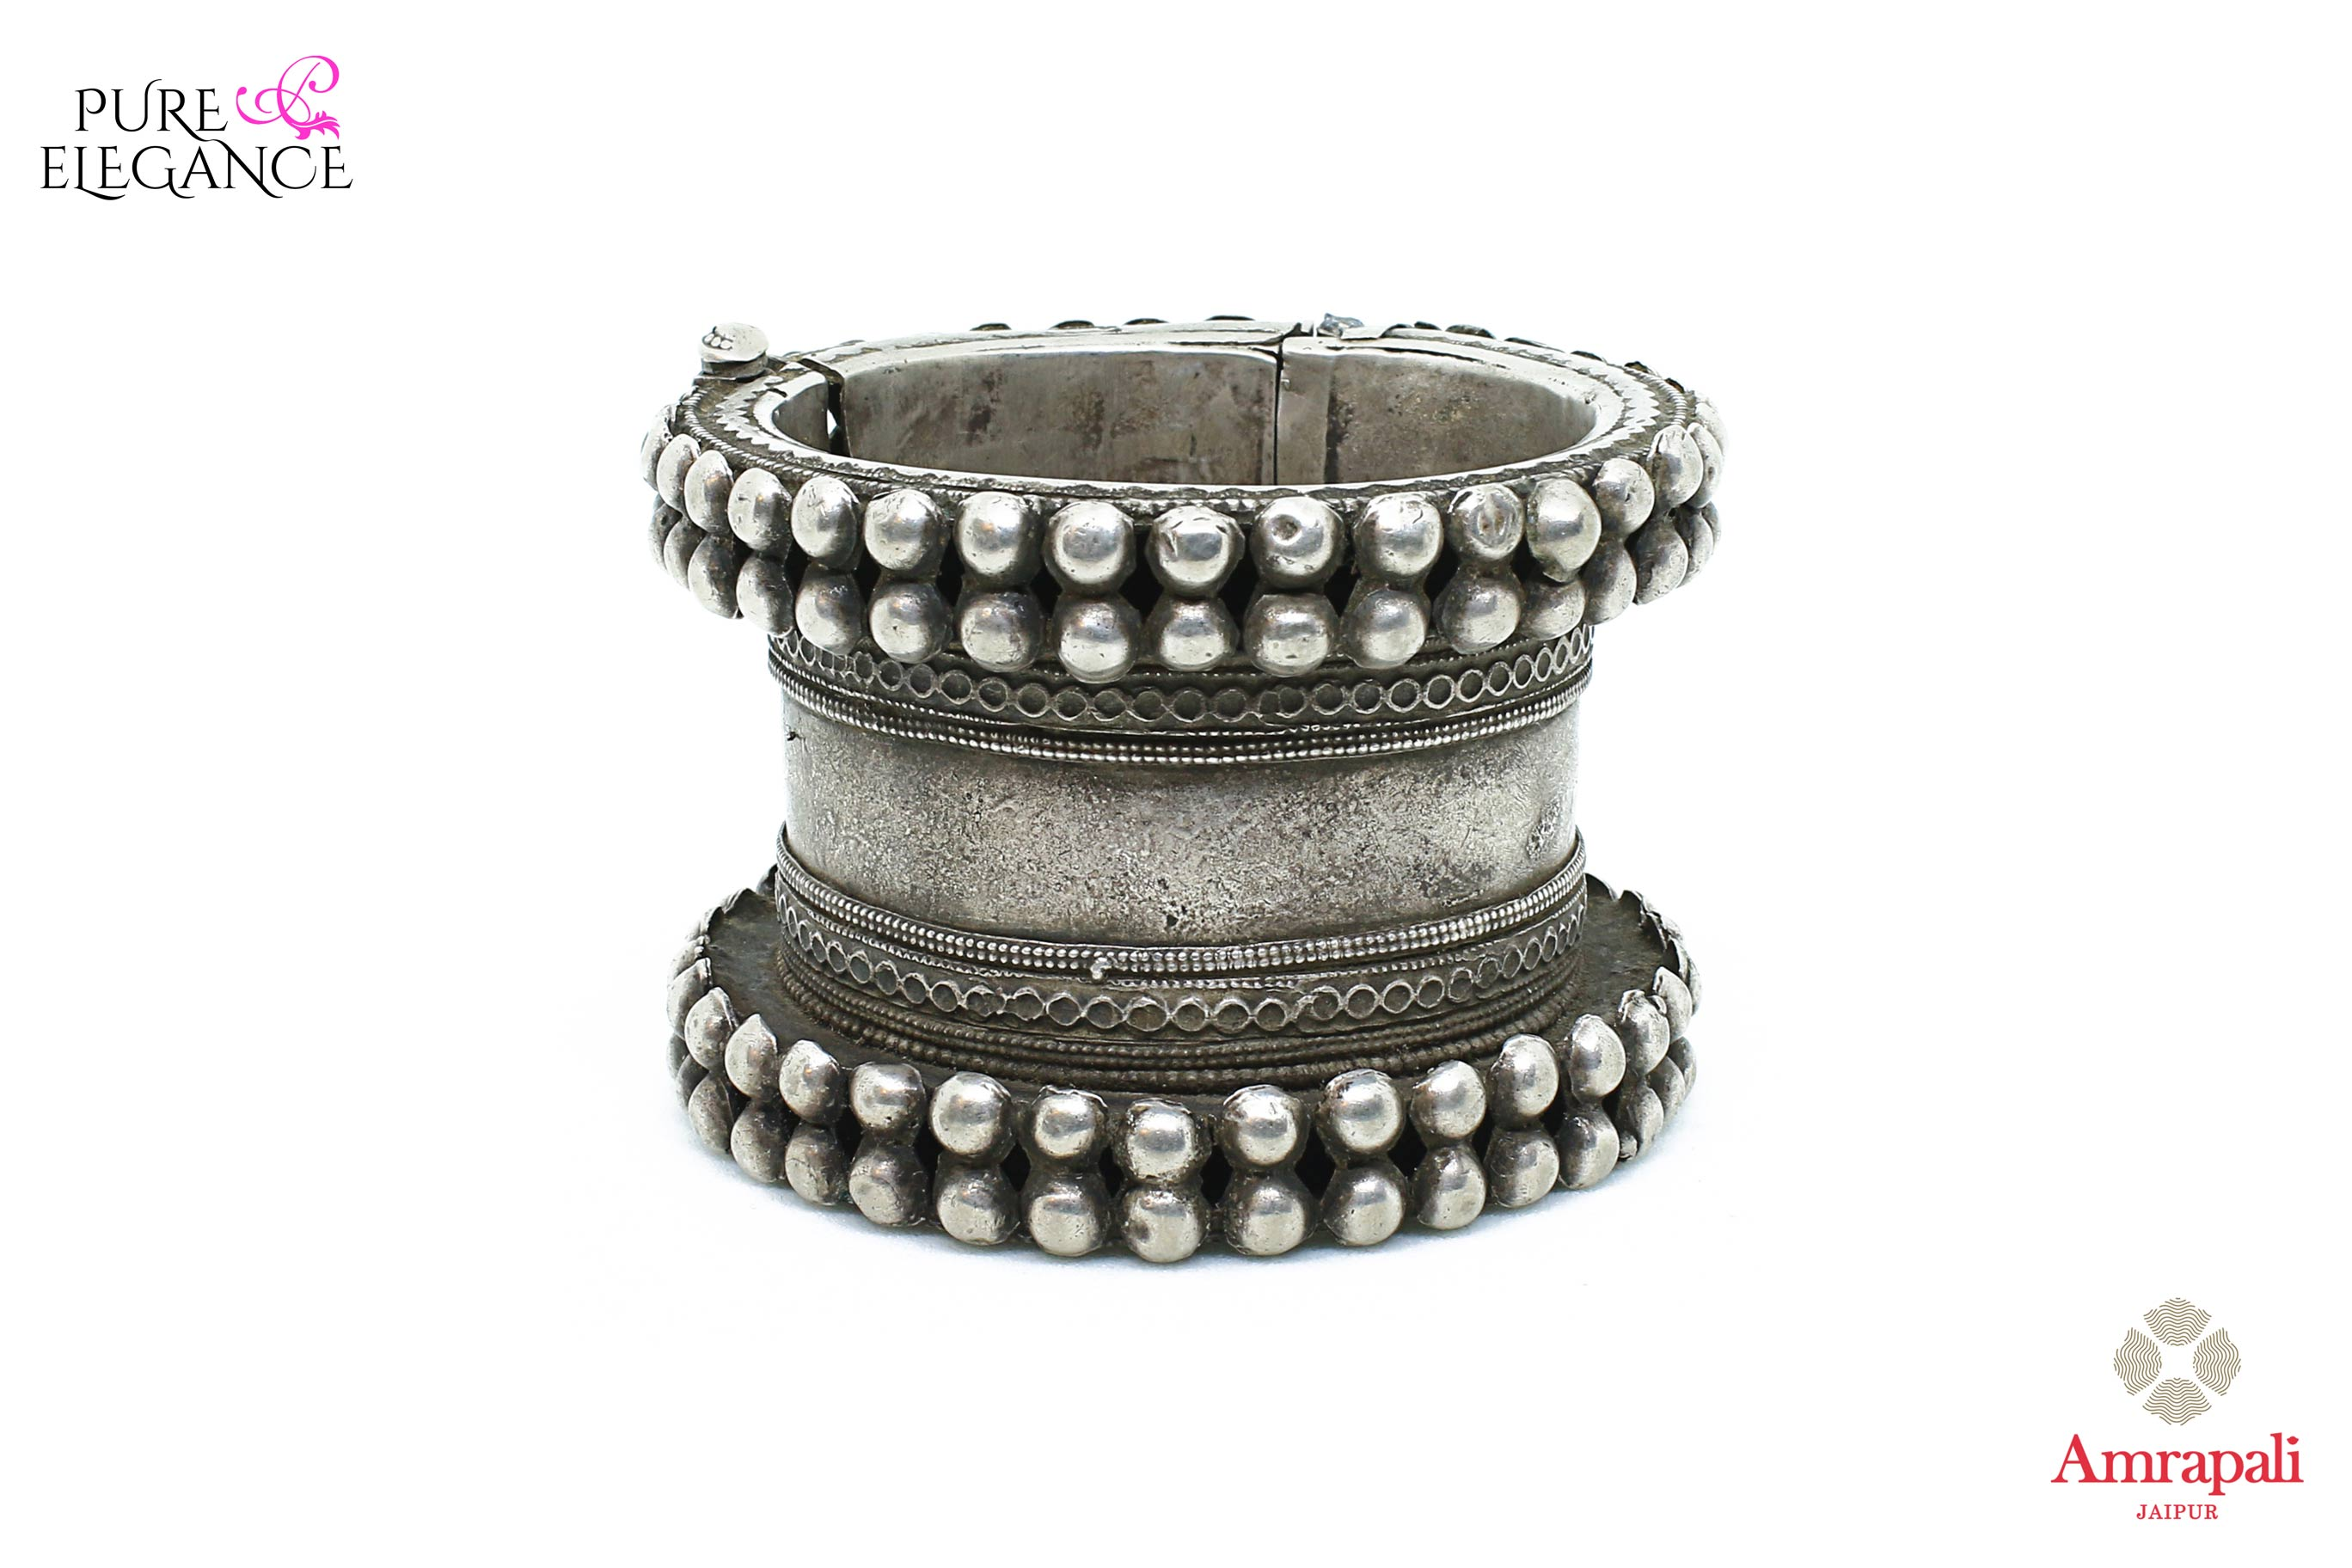 Buy beautiful Amrapali handcrafted heavy silver bangle online in USA. Find an exquisite collection of handcrafted silver gold plated jewelry in USA at Pure Elegance Indian fashion store. Complete your festive look with traditional Indian jewelry, silver gold plated earrings, silver jewellery from our online store.-front